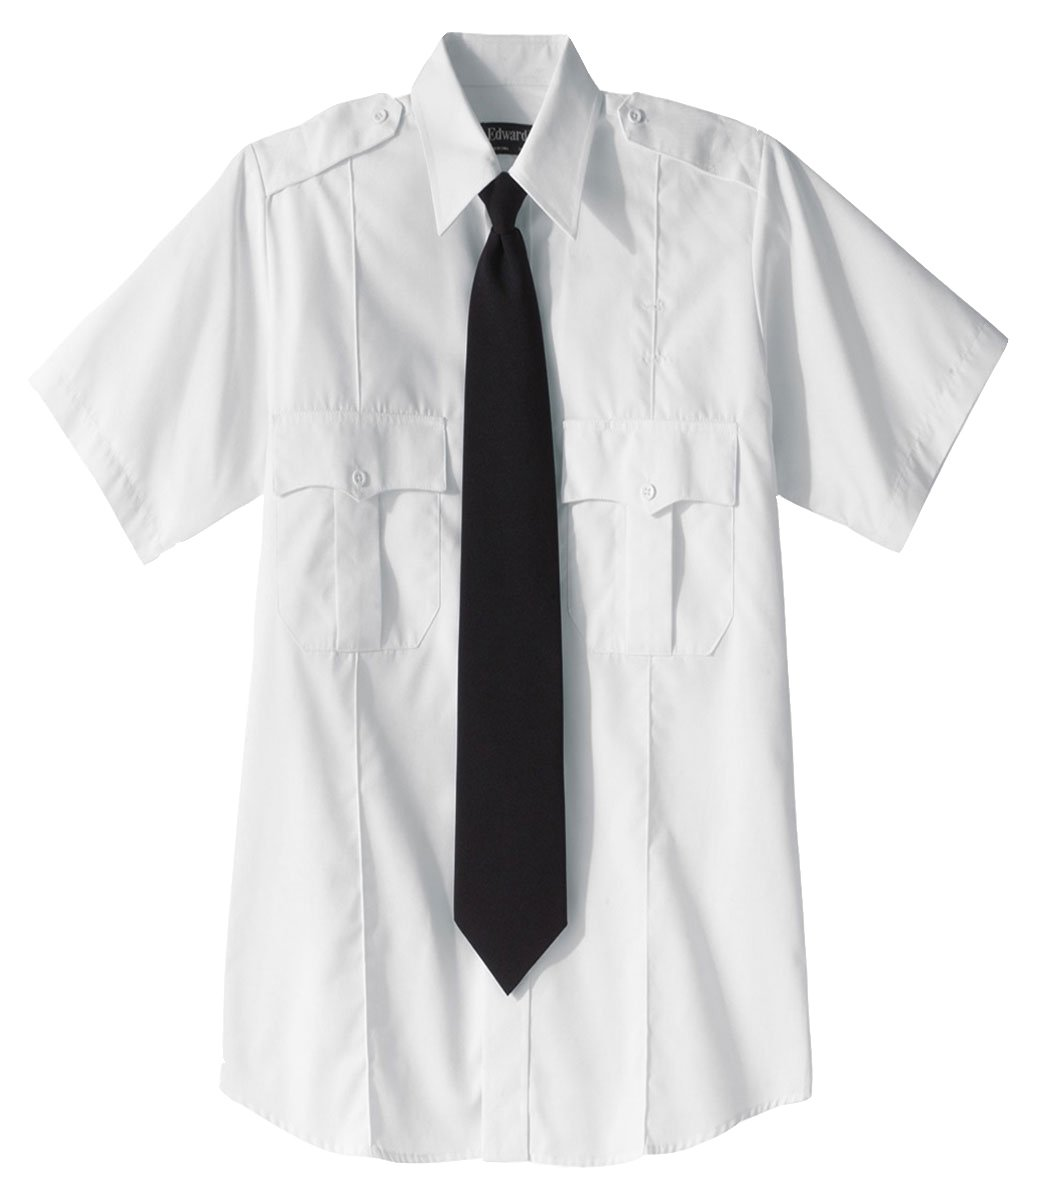 Ed Garments 1226 Security Short Sleeve Shirt Polyester/Cotton Blend - White - Medium